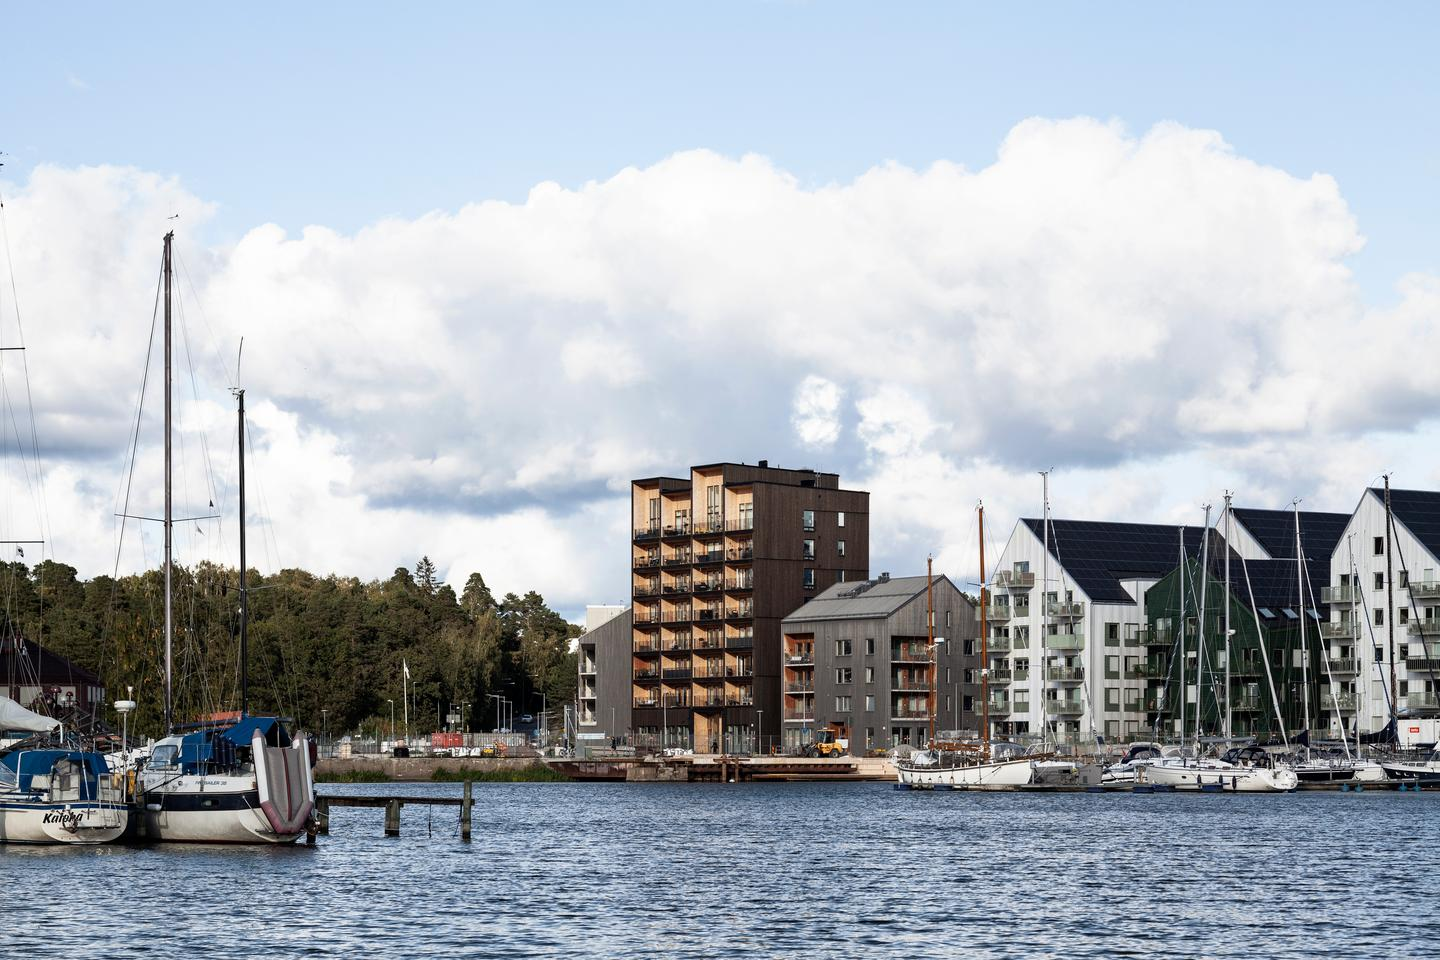 The Kajstaden Tall Timber Building is located next to a lake in Västerås, Sweden